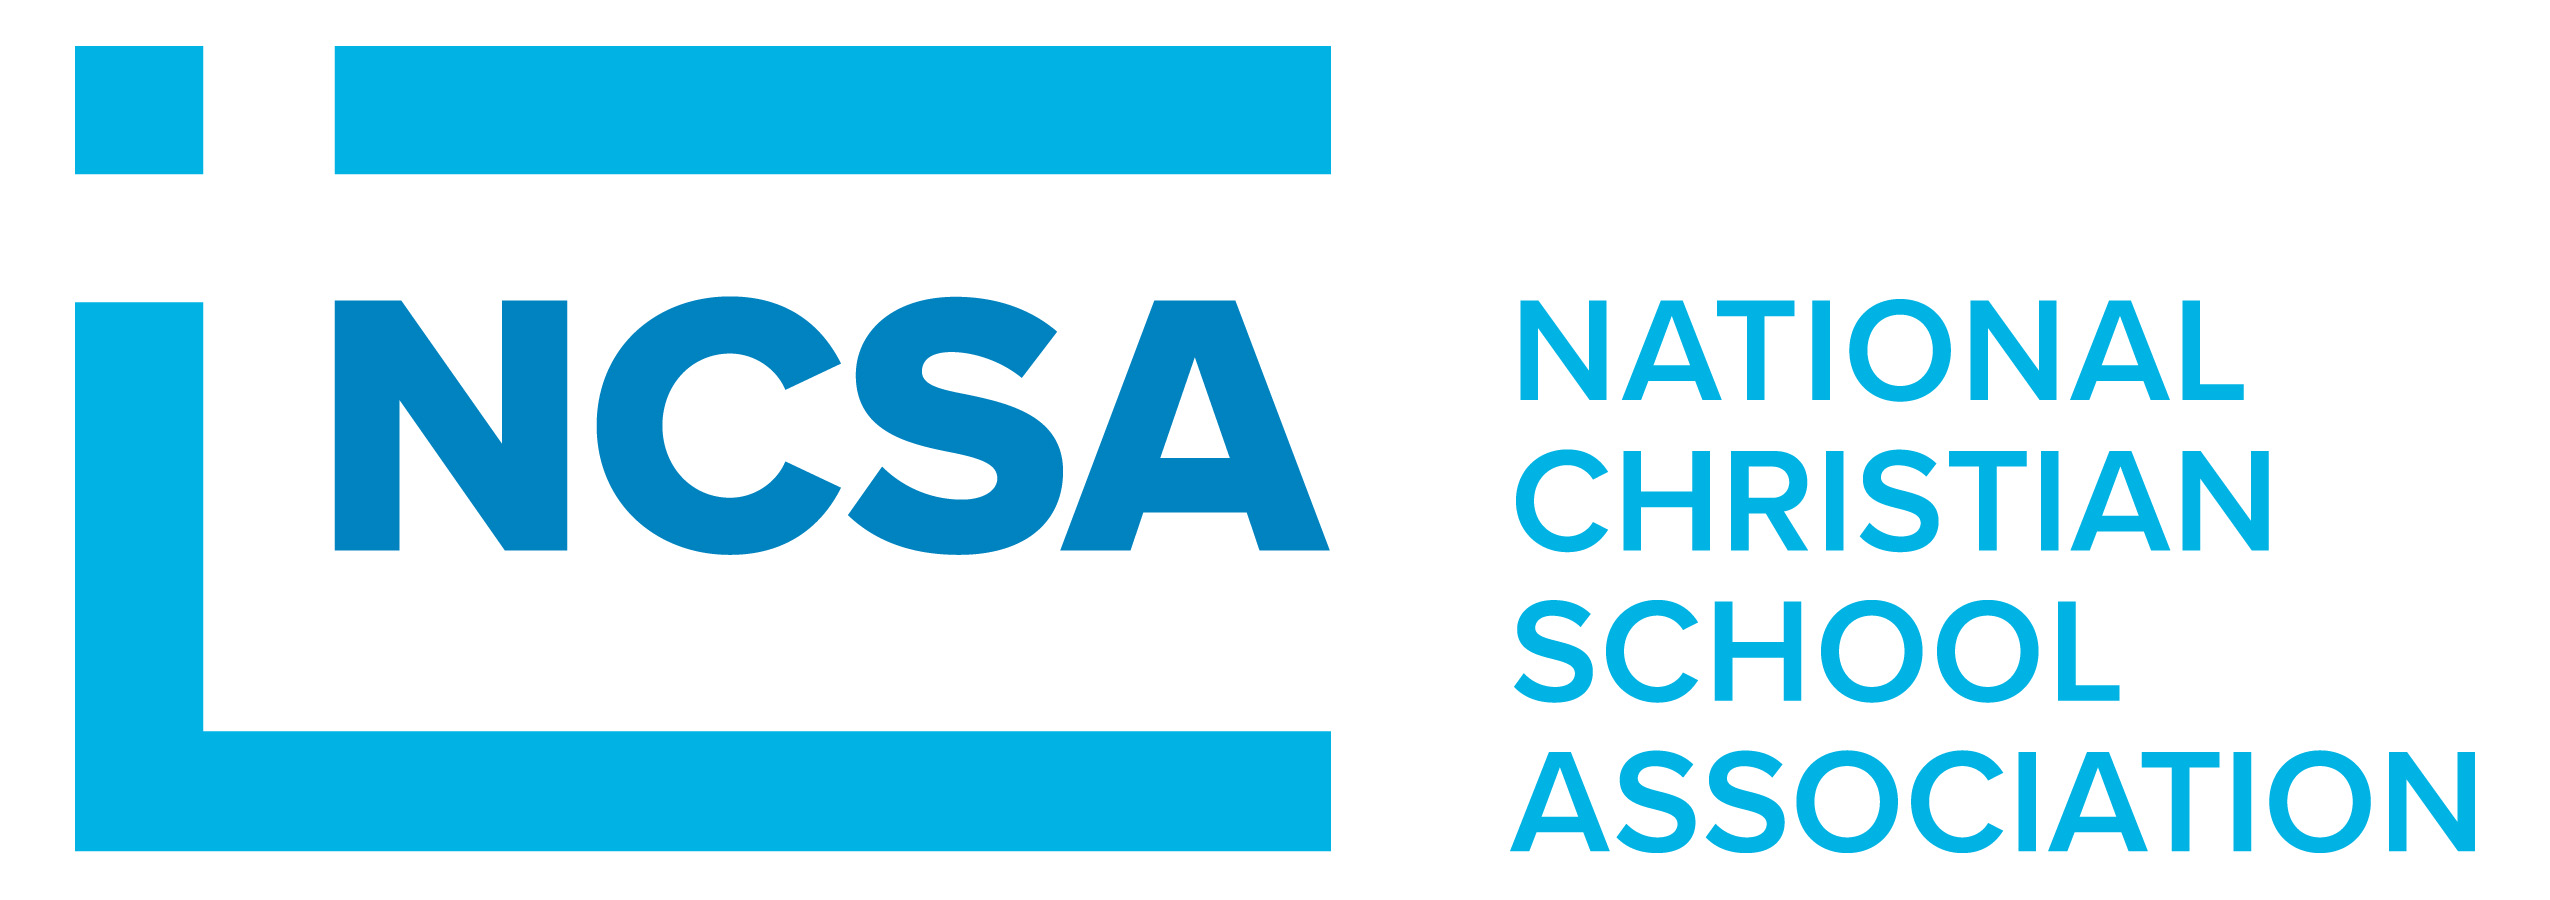 National Christian School Association